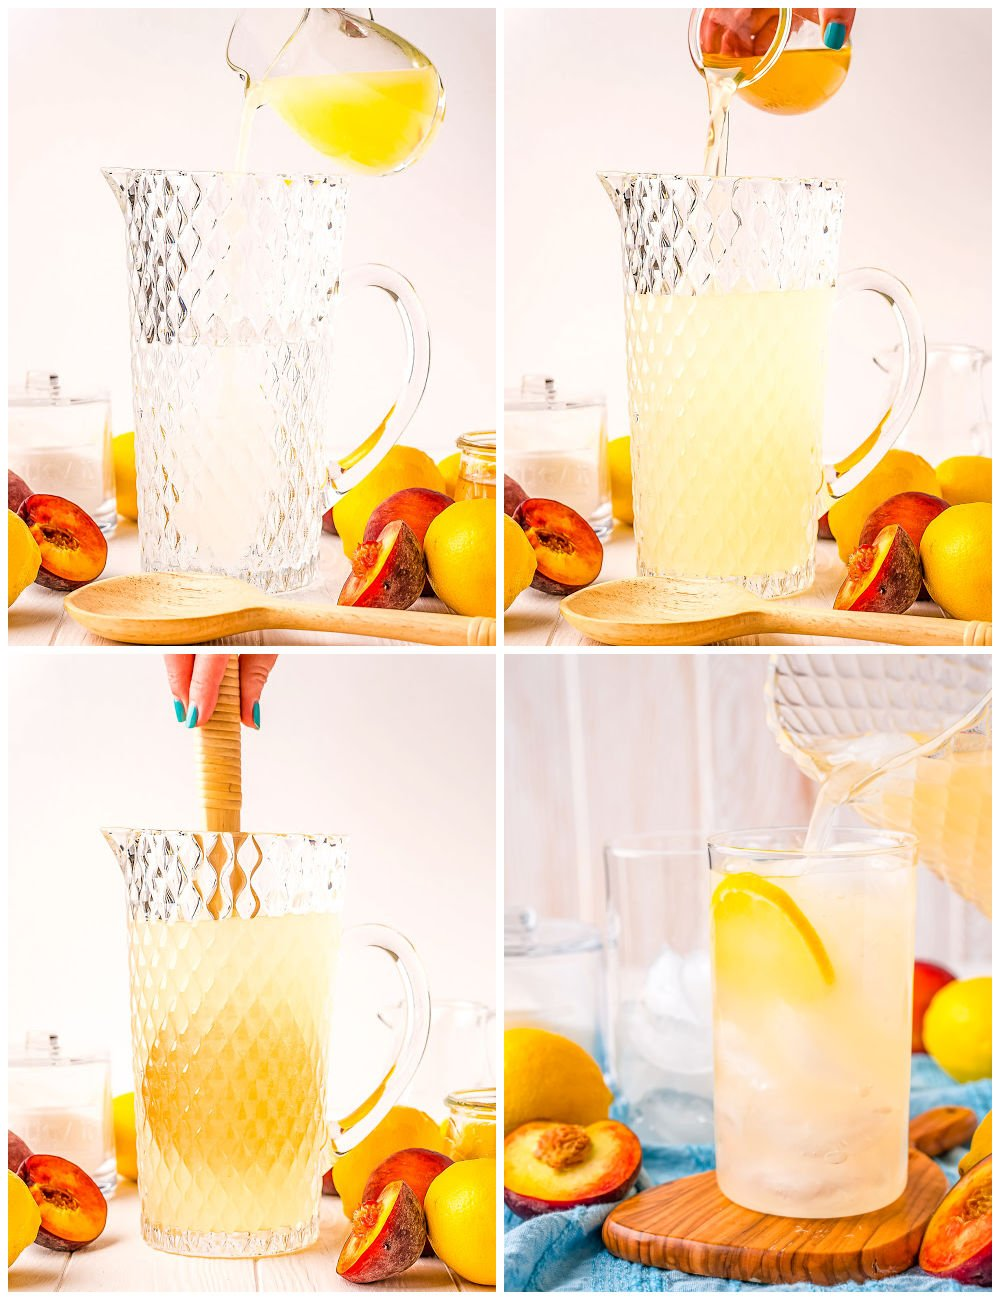 A picture collage of how to make Peach Lemonade.